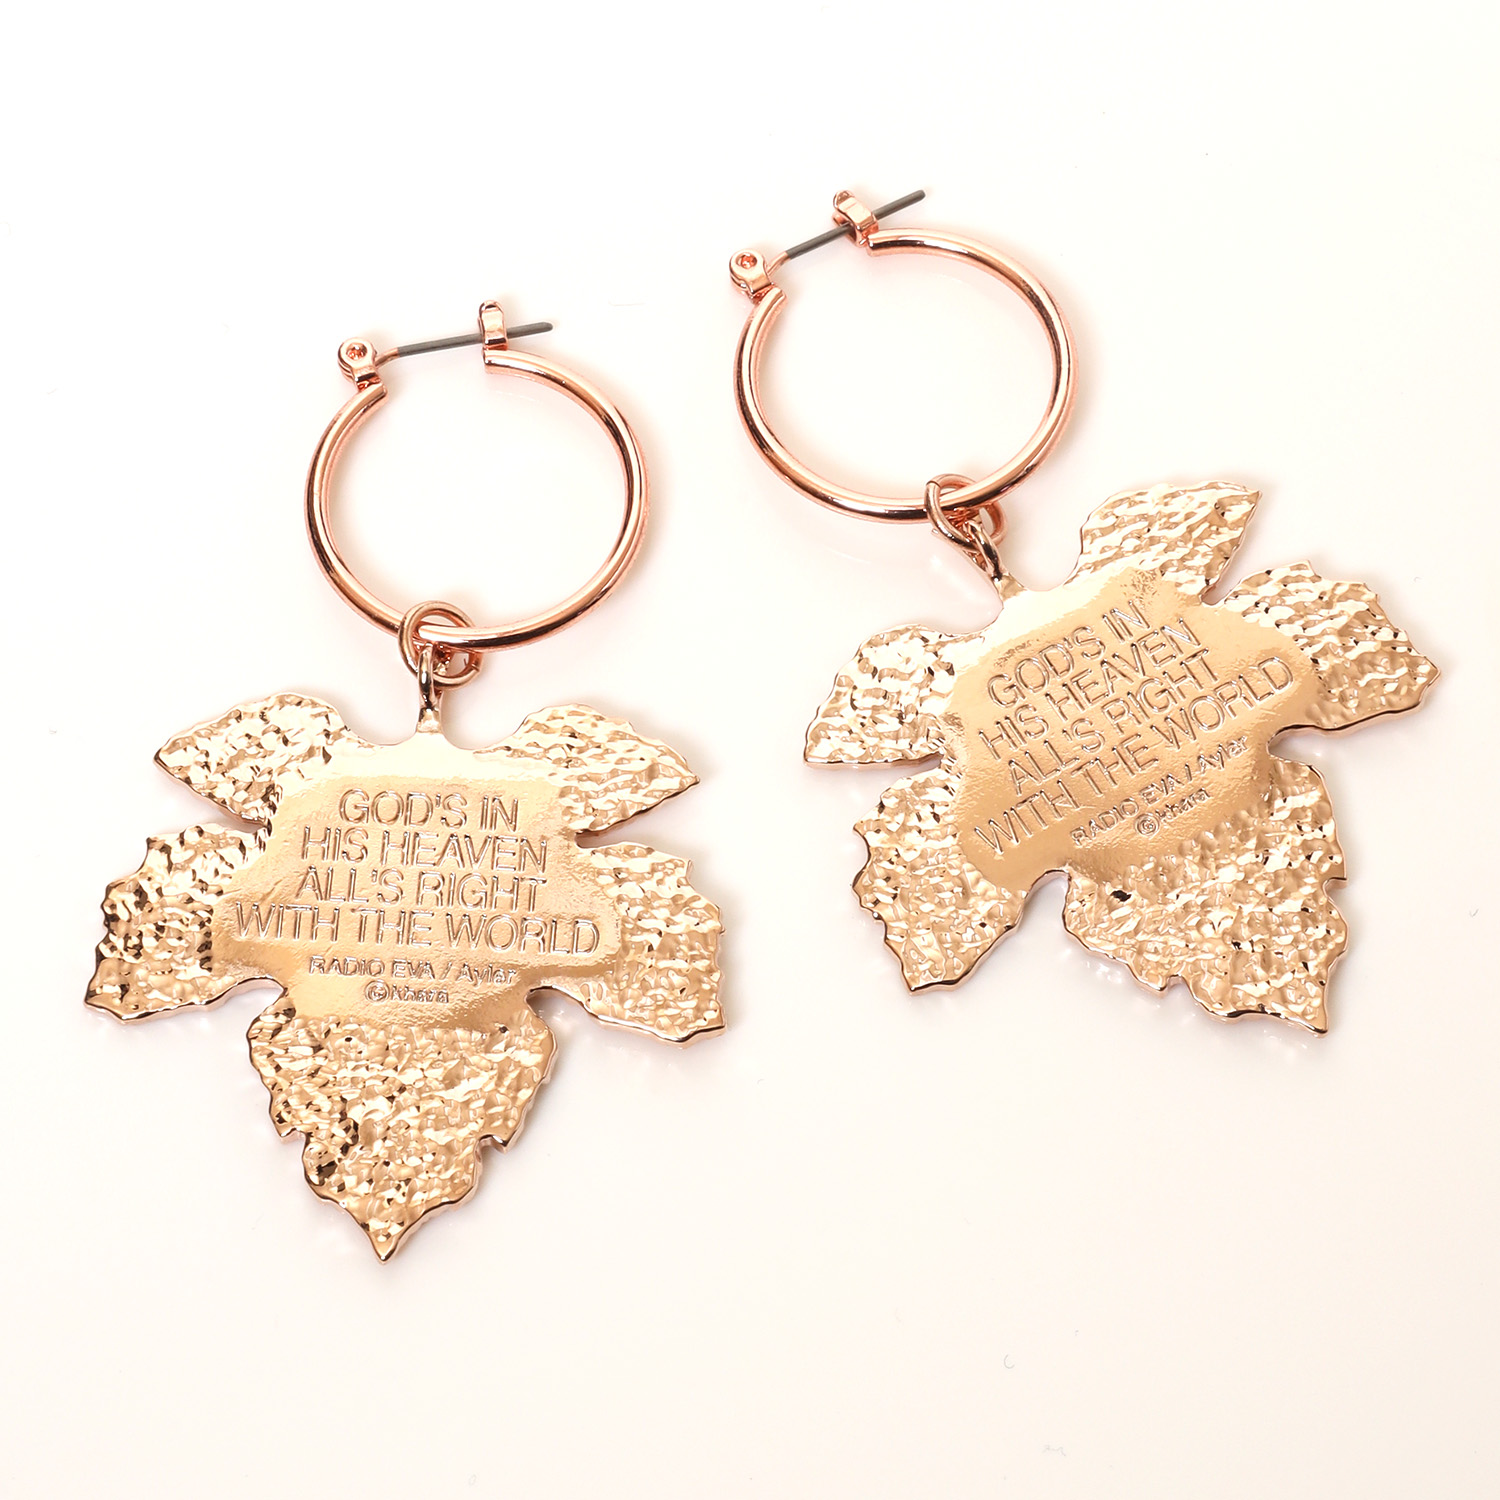 NERV Fig Leaf Earrings by Ayler (PINK GOLD) 2個セット